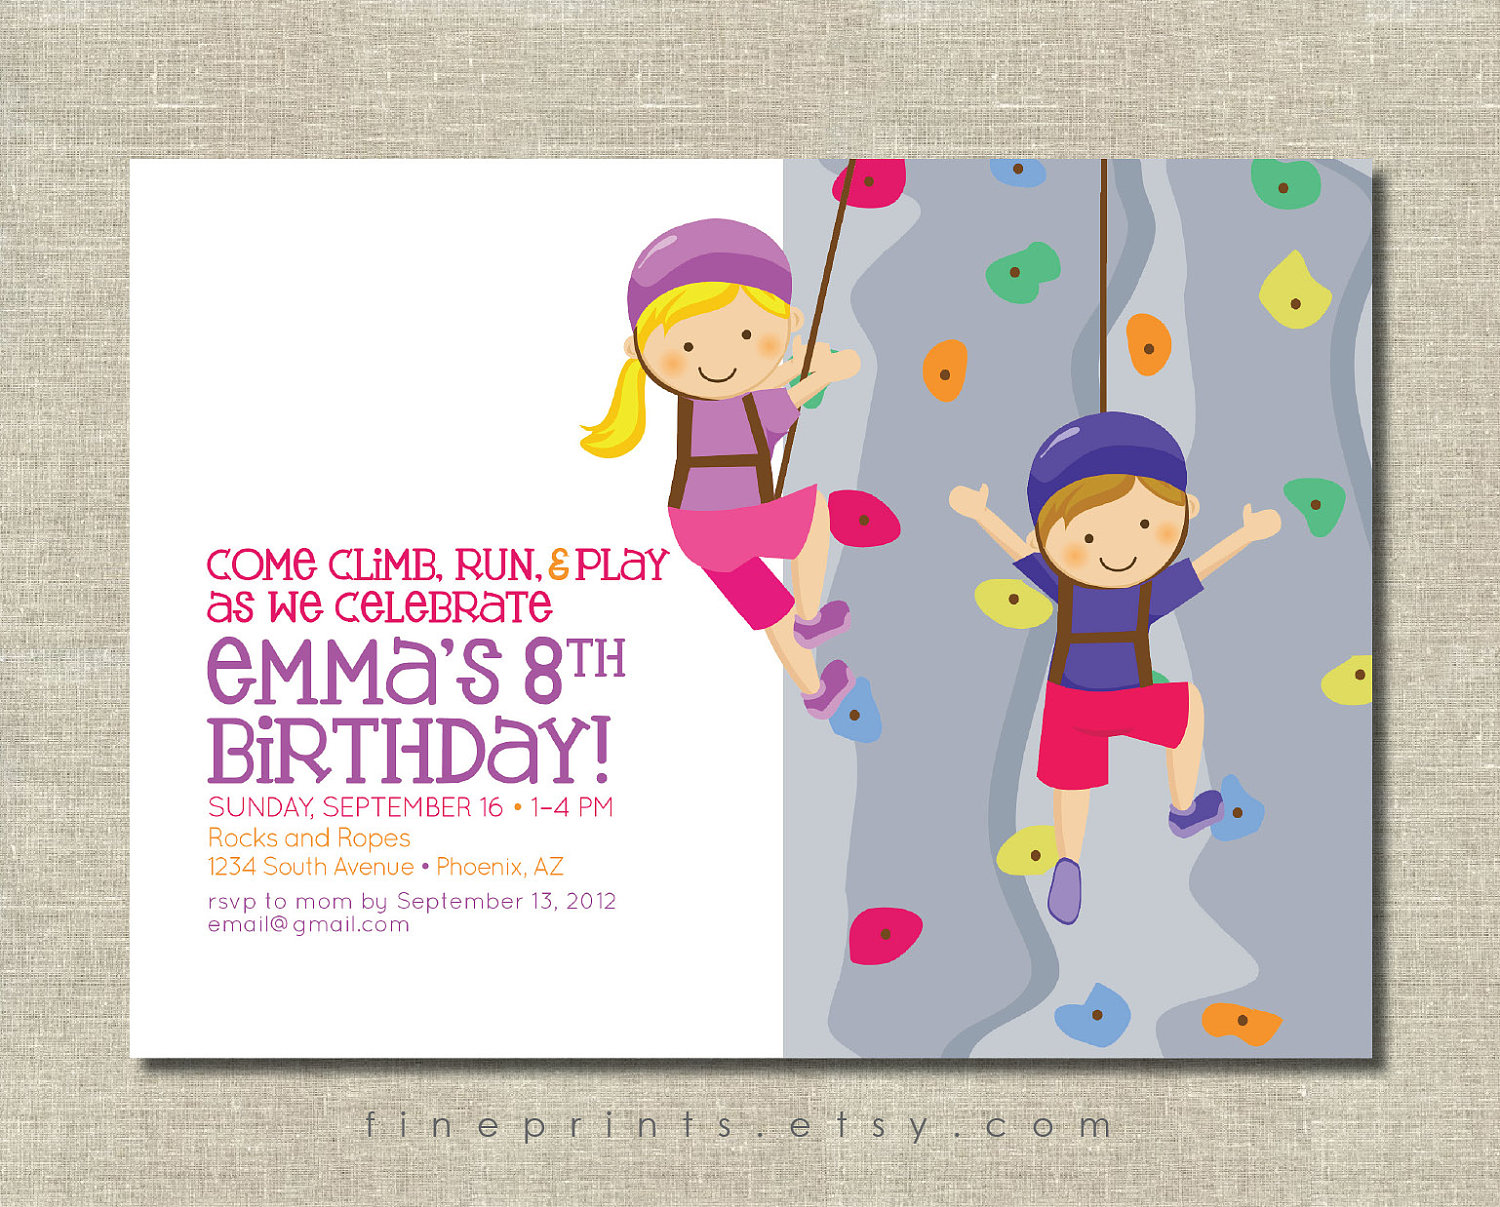 Rock Climbing Birthday Party Invitations DolanPedia Invitations